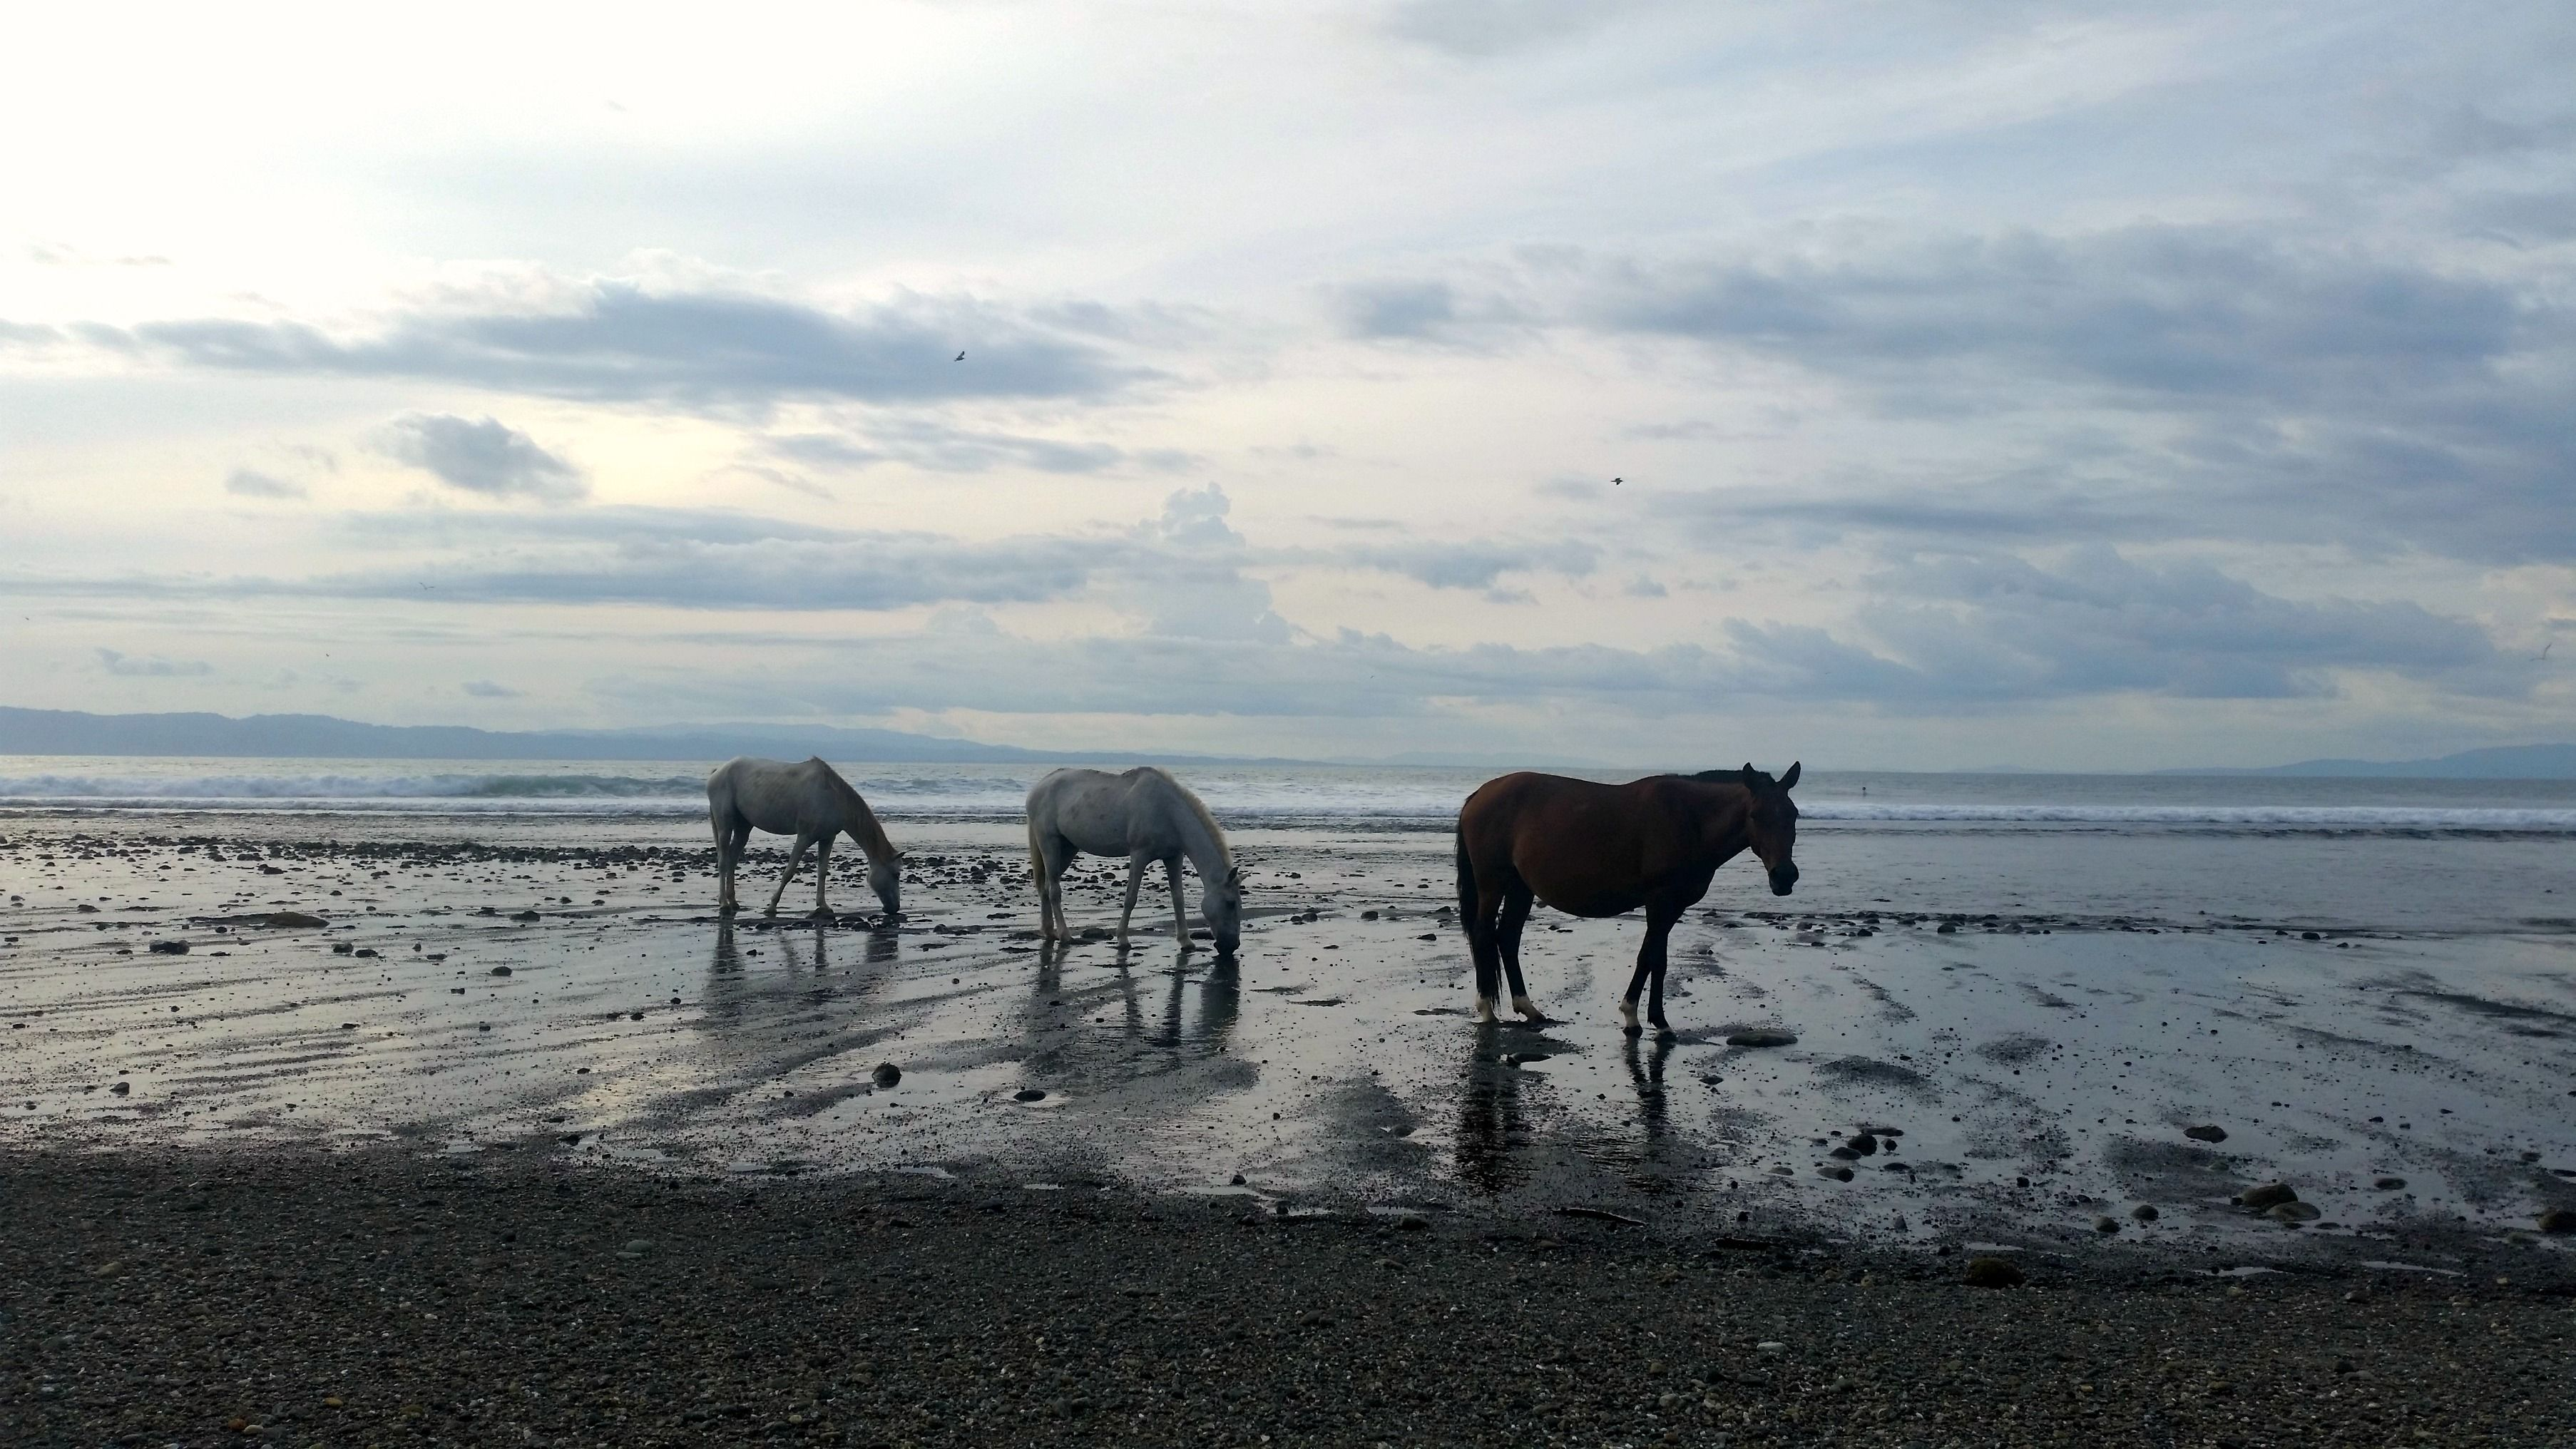 Wild horses on the beach in Pavones, Costa Rica... Such a beautiful sight! See more photos over on my blog: http://www.intrepid-introvert.com/costa-rica-in-photos/